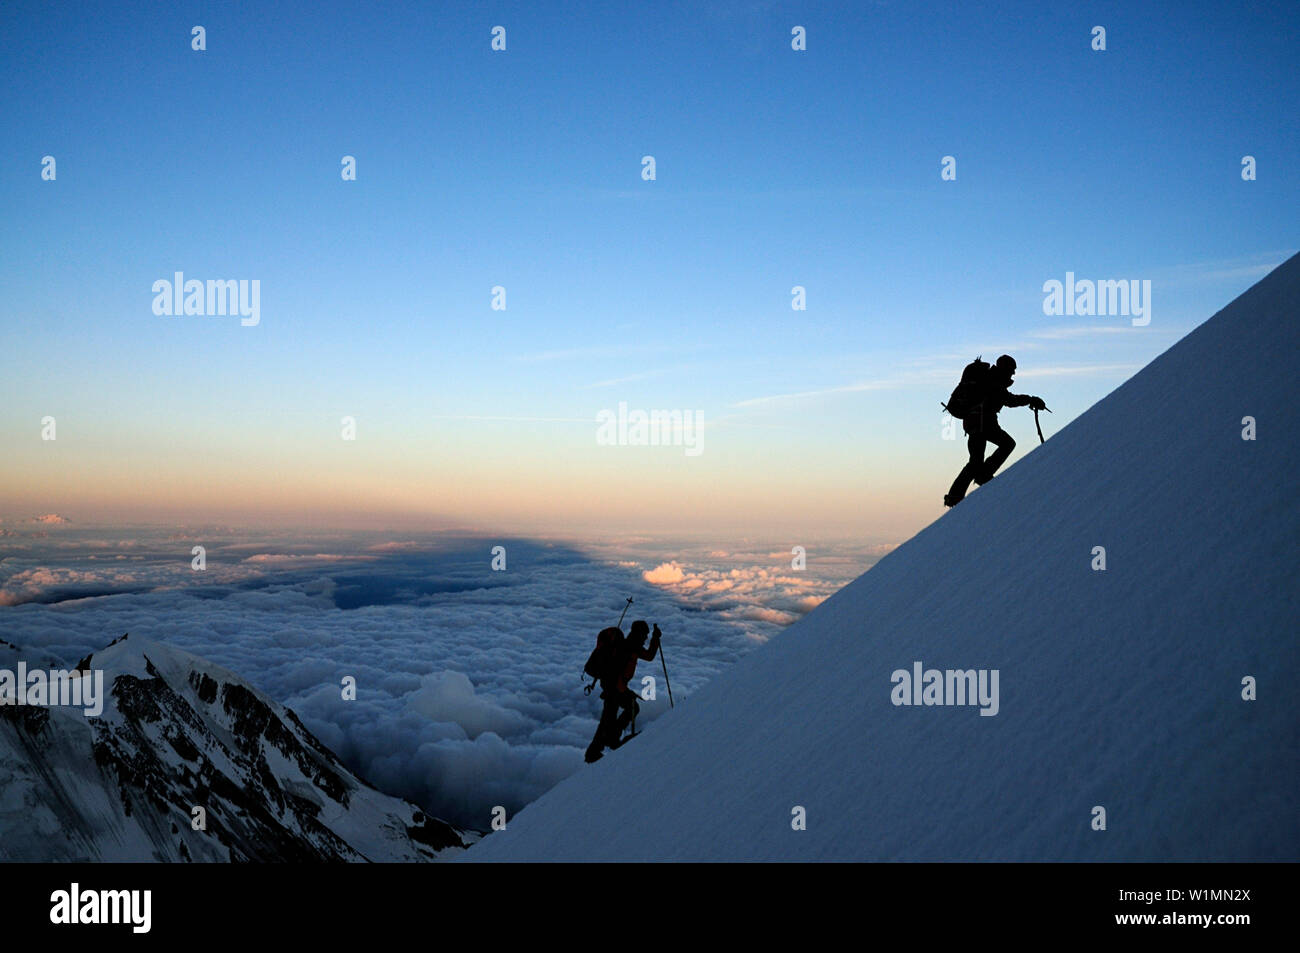 Mountaineers in the shadow of Mont Blanc during ascent of Aiguille de Bionnassay, Mont Blanc, France - Stock Image